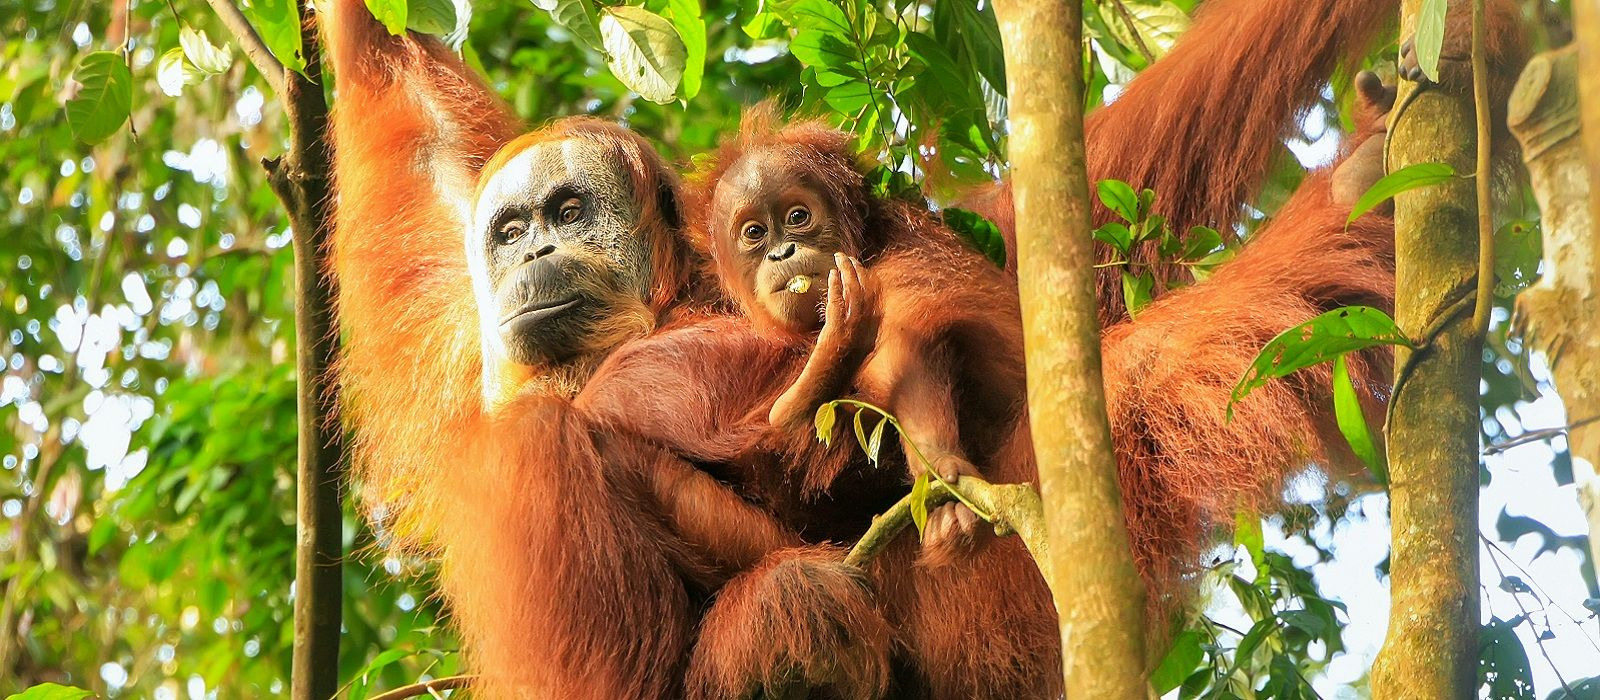 Orangutan di Tangkahan | Sumber: Enchanting Travels